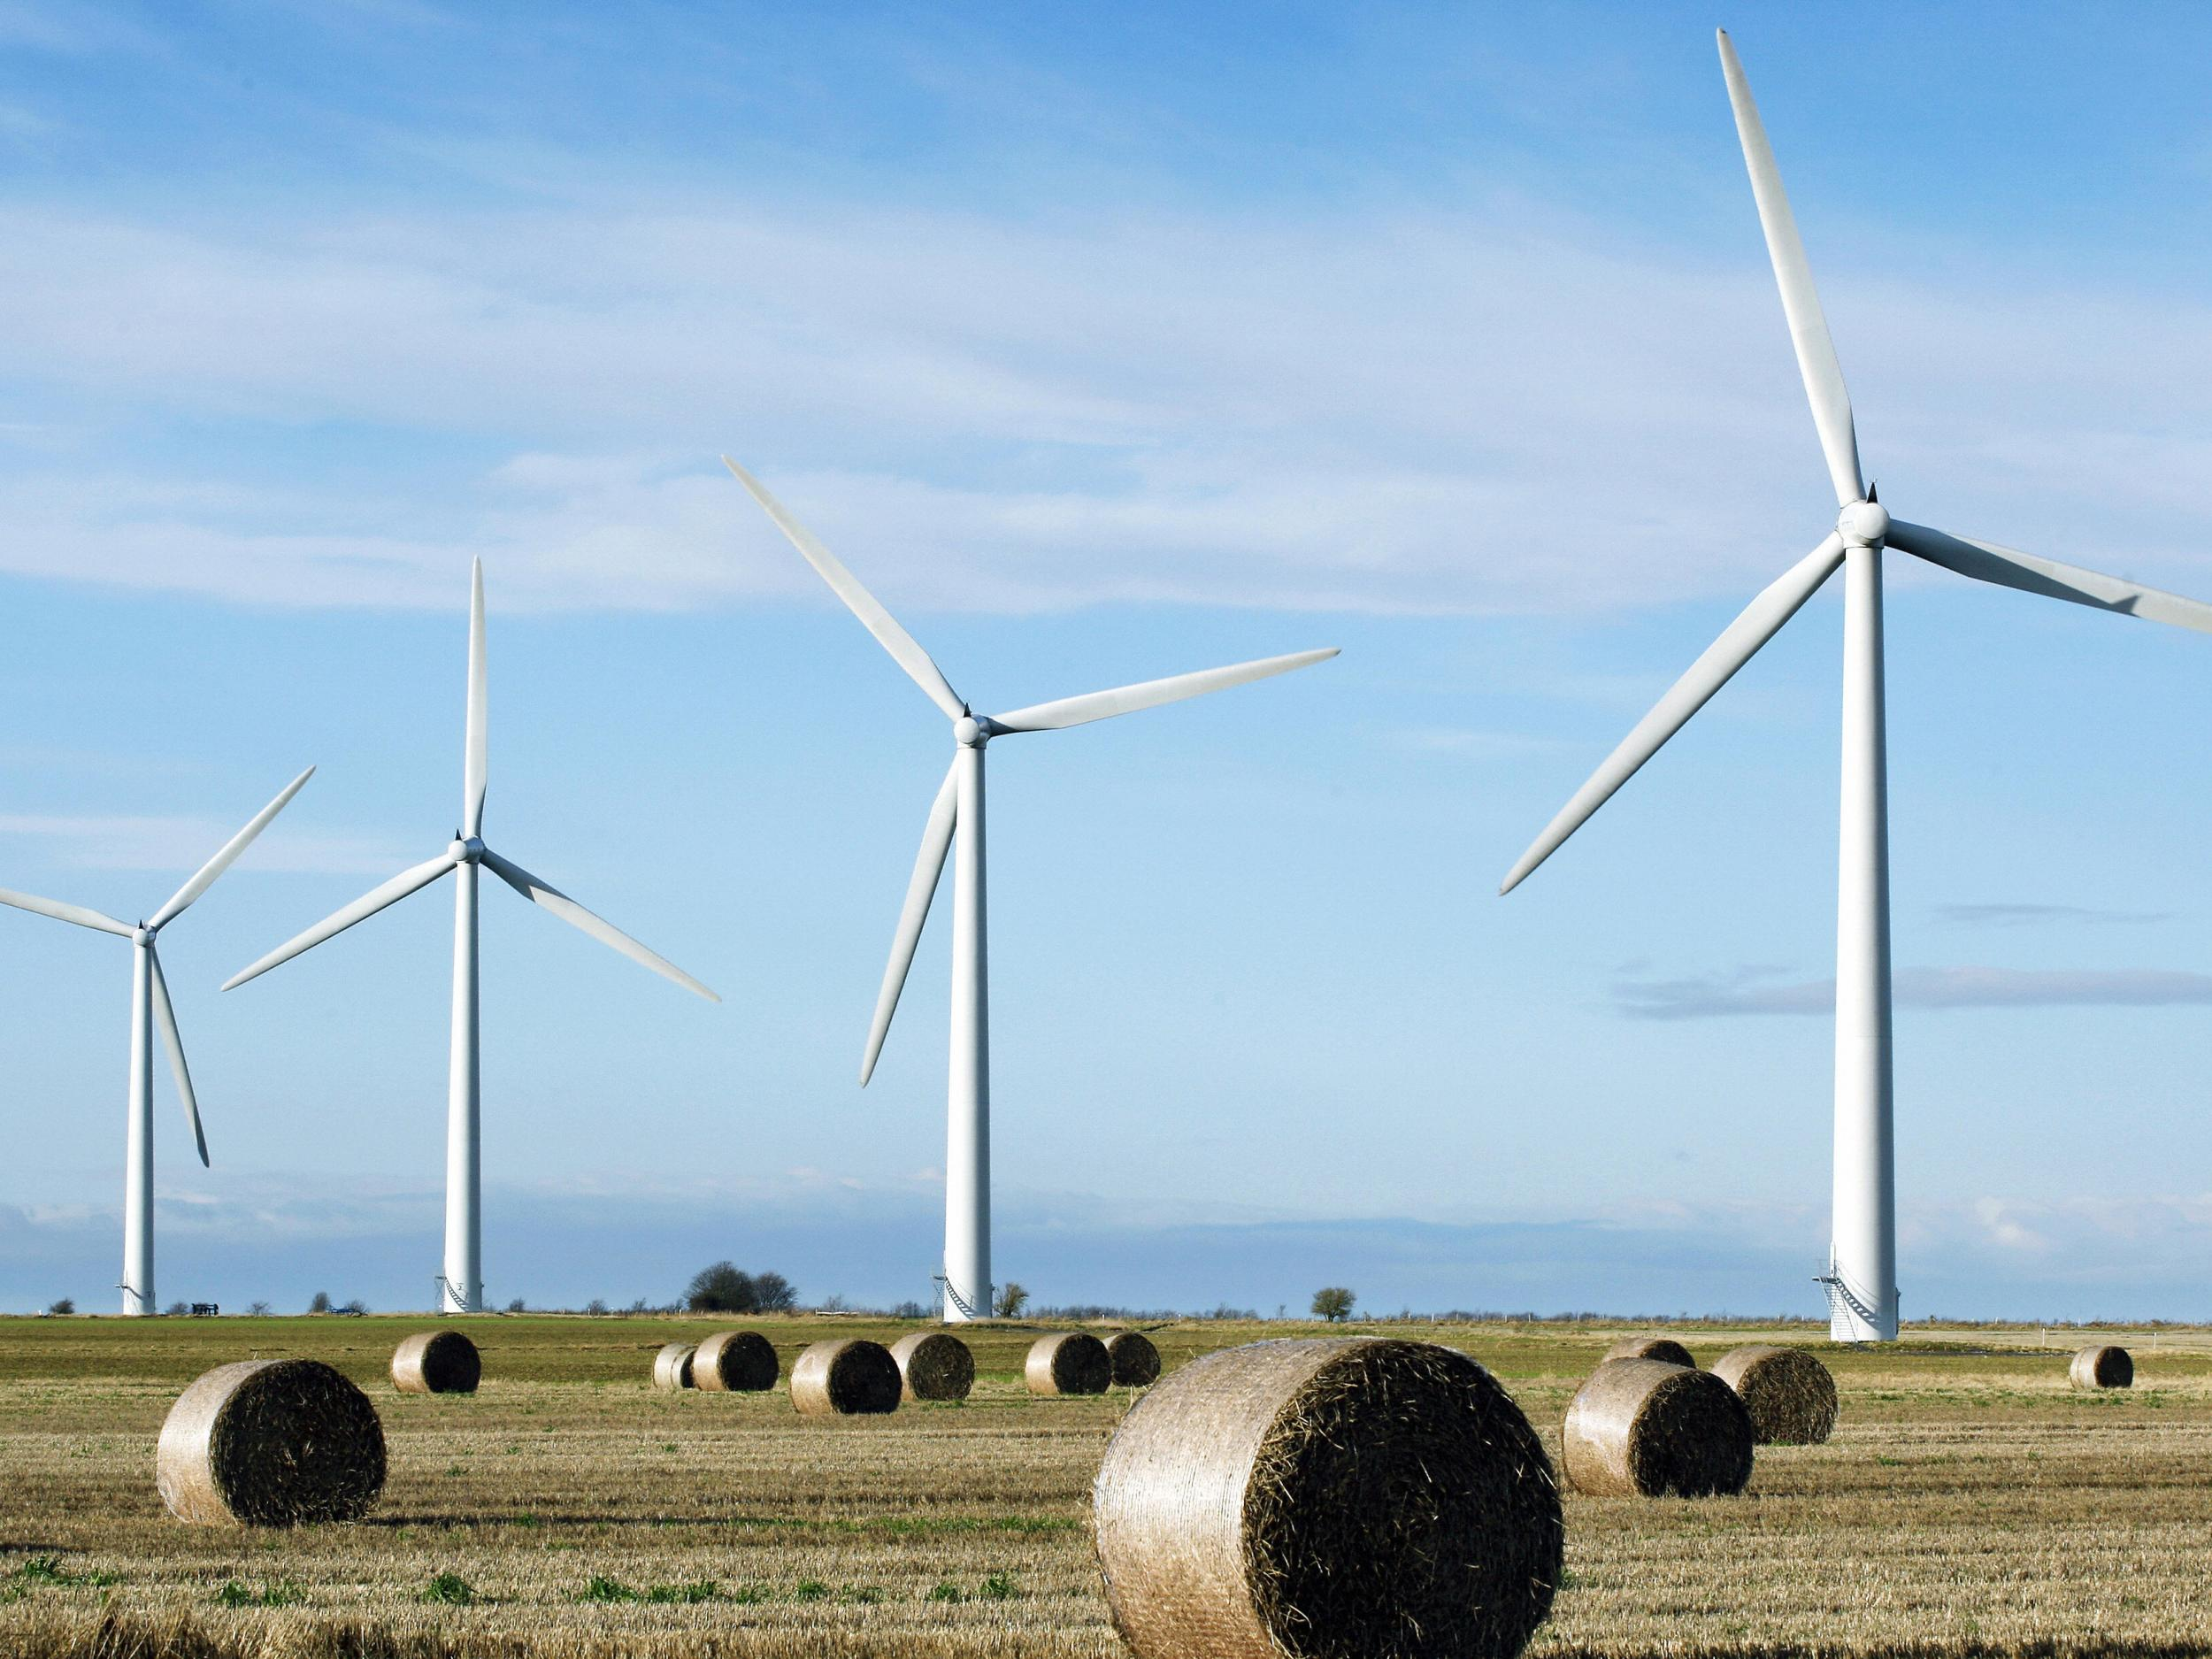 Wind Power Latest News Breaking Stories And Comment The Independent Uk Politics